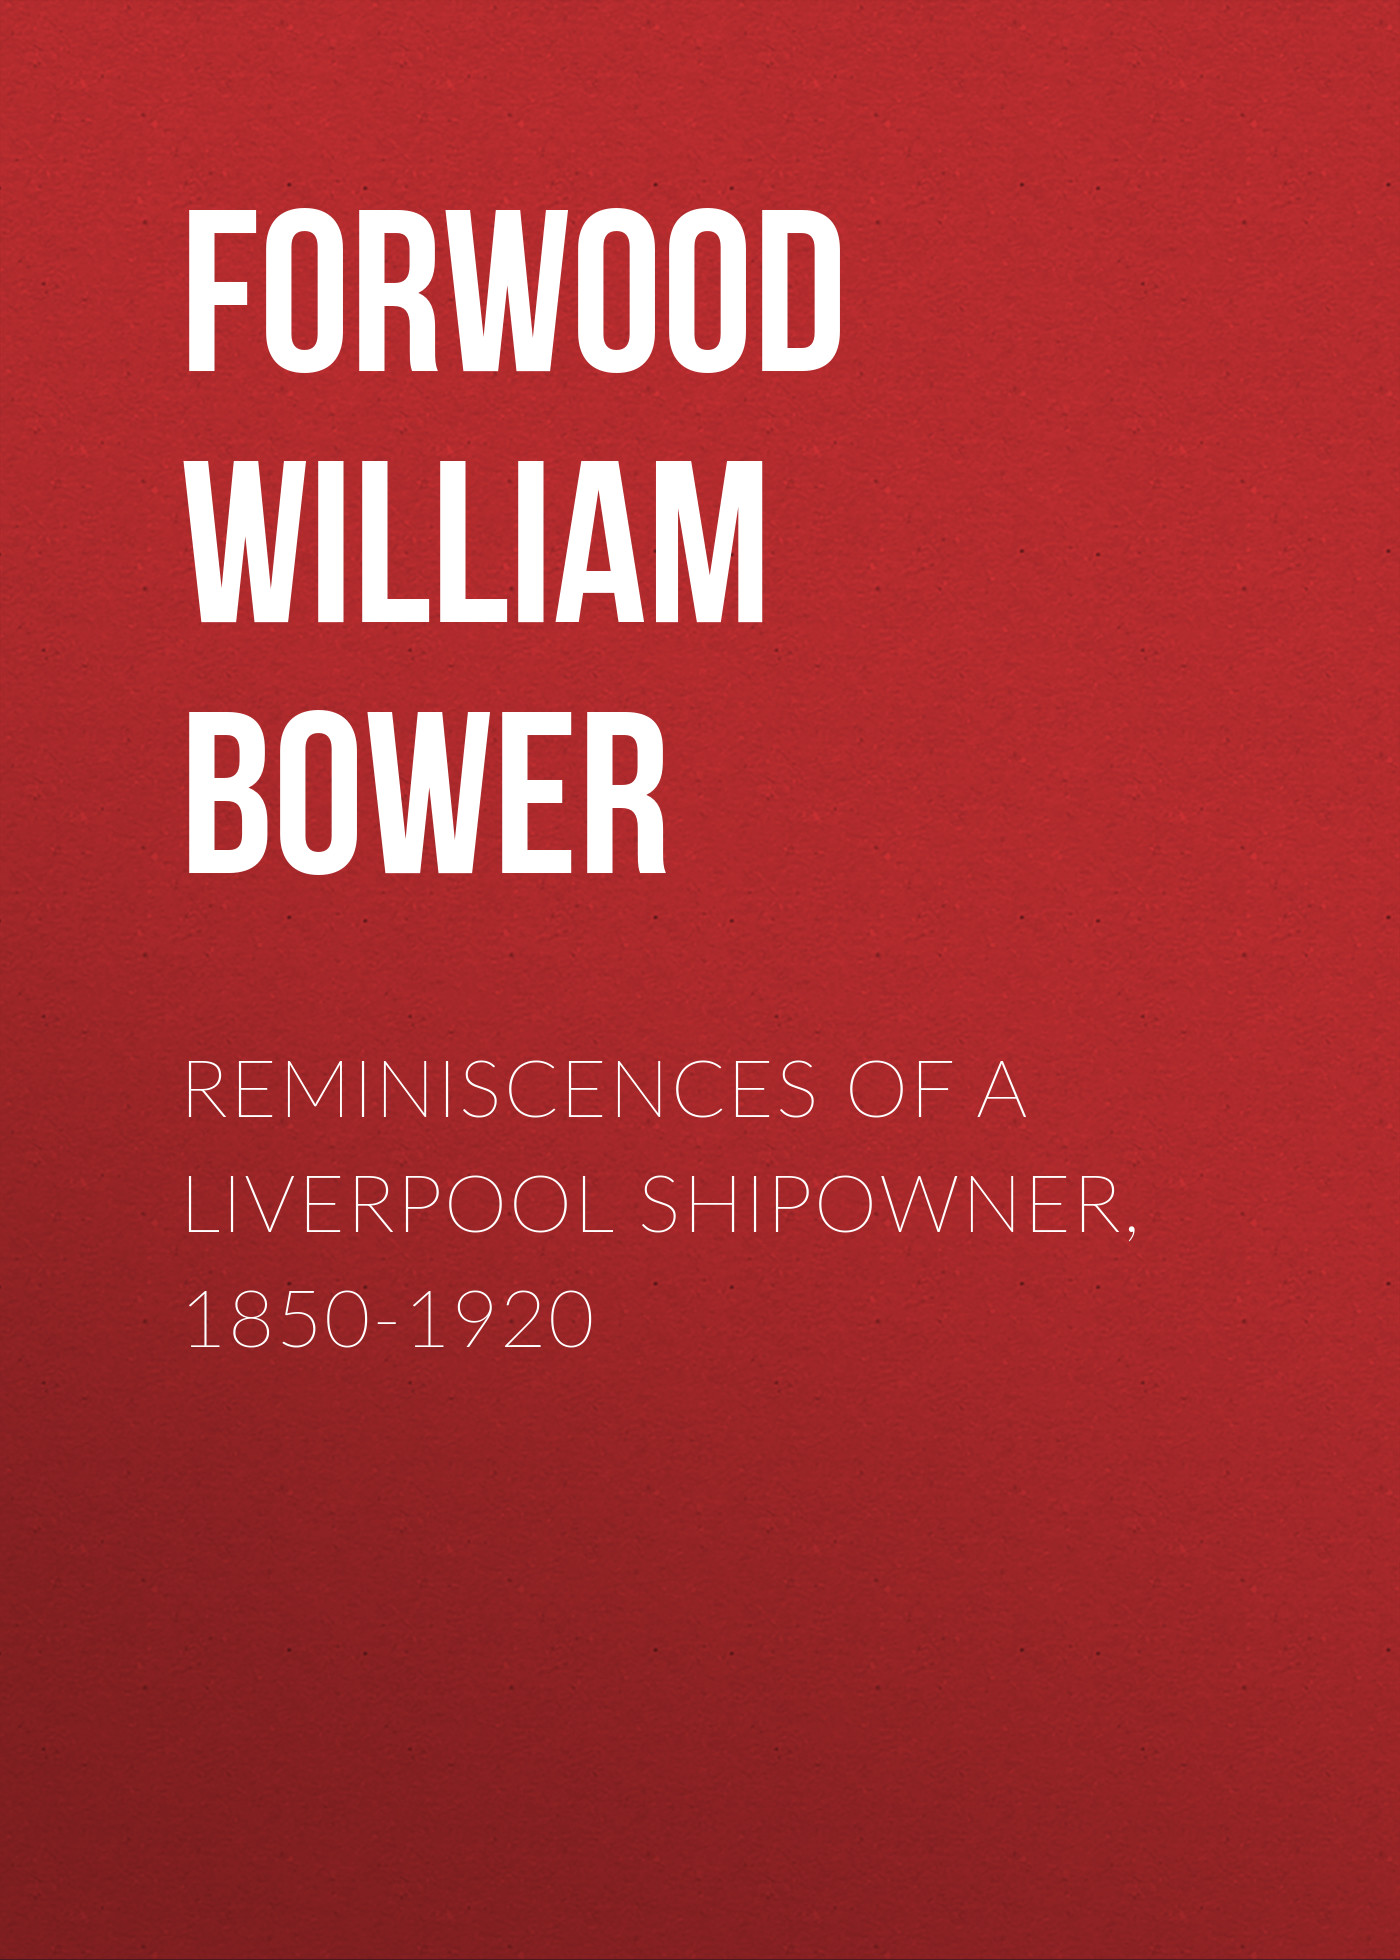 Forwood William Bower Reminiscences of a Liverpool Shipowner, 1850-1920 a dubuque reminiscences d operas italiens